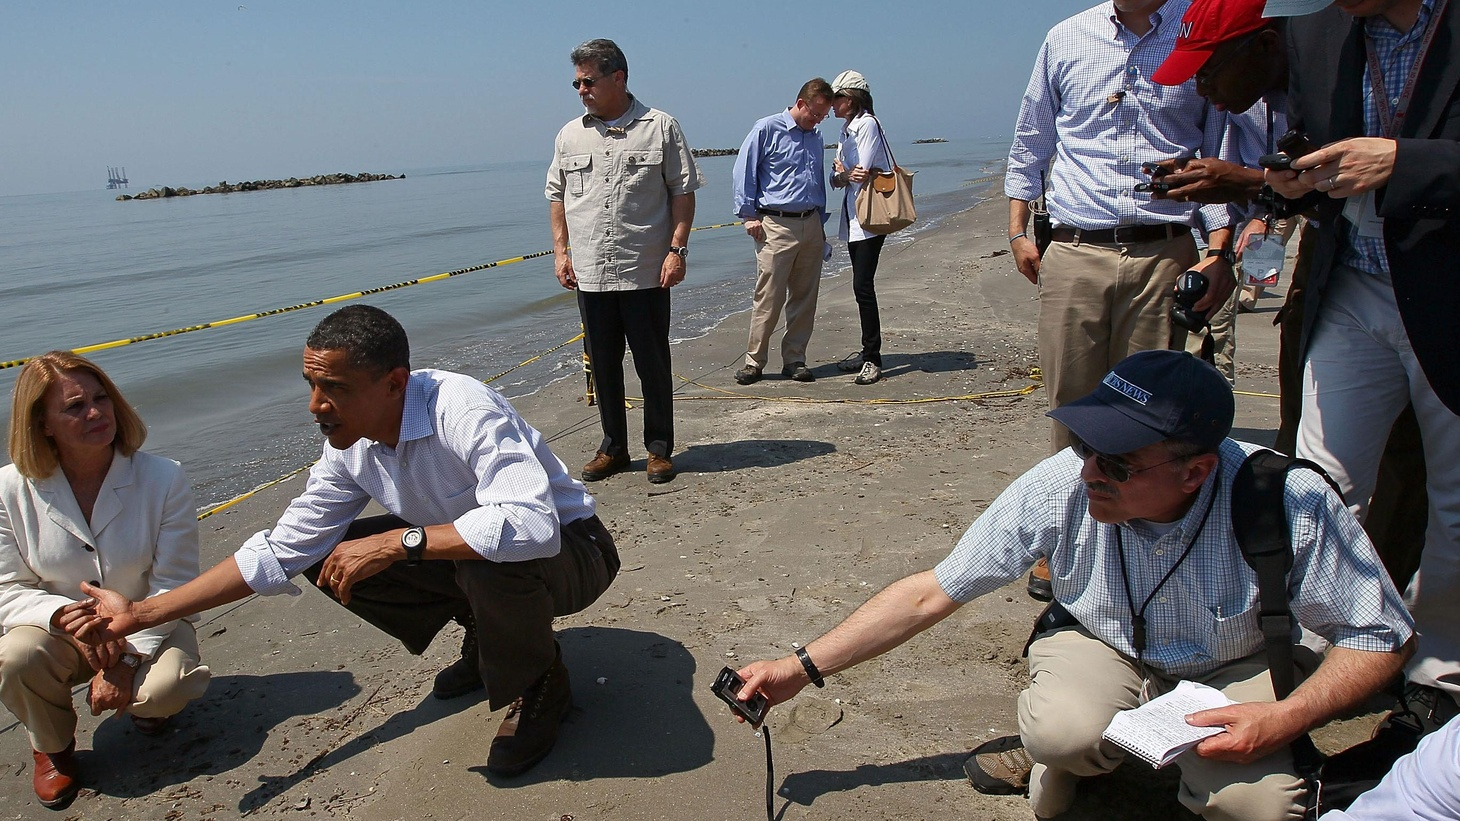 Was Obama too slow? Is the BP Gulf Spill his Katrina? Economic shocks continue to rattle the market and the globe. Is Spain the new Greece? Is China manipulating currency exchanges and holding US and Europe hostage? Plus, with news of the White House asking Bill Clinton to ask Joe Sestak not to run against Arlen Specter, is this business as usual from a President who promised cleaner politics and no more backroom deals? Is it really important? (David Frum sits in for Tony Blankley.)